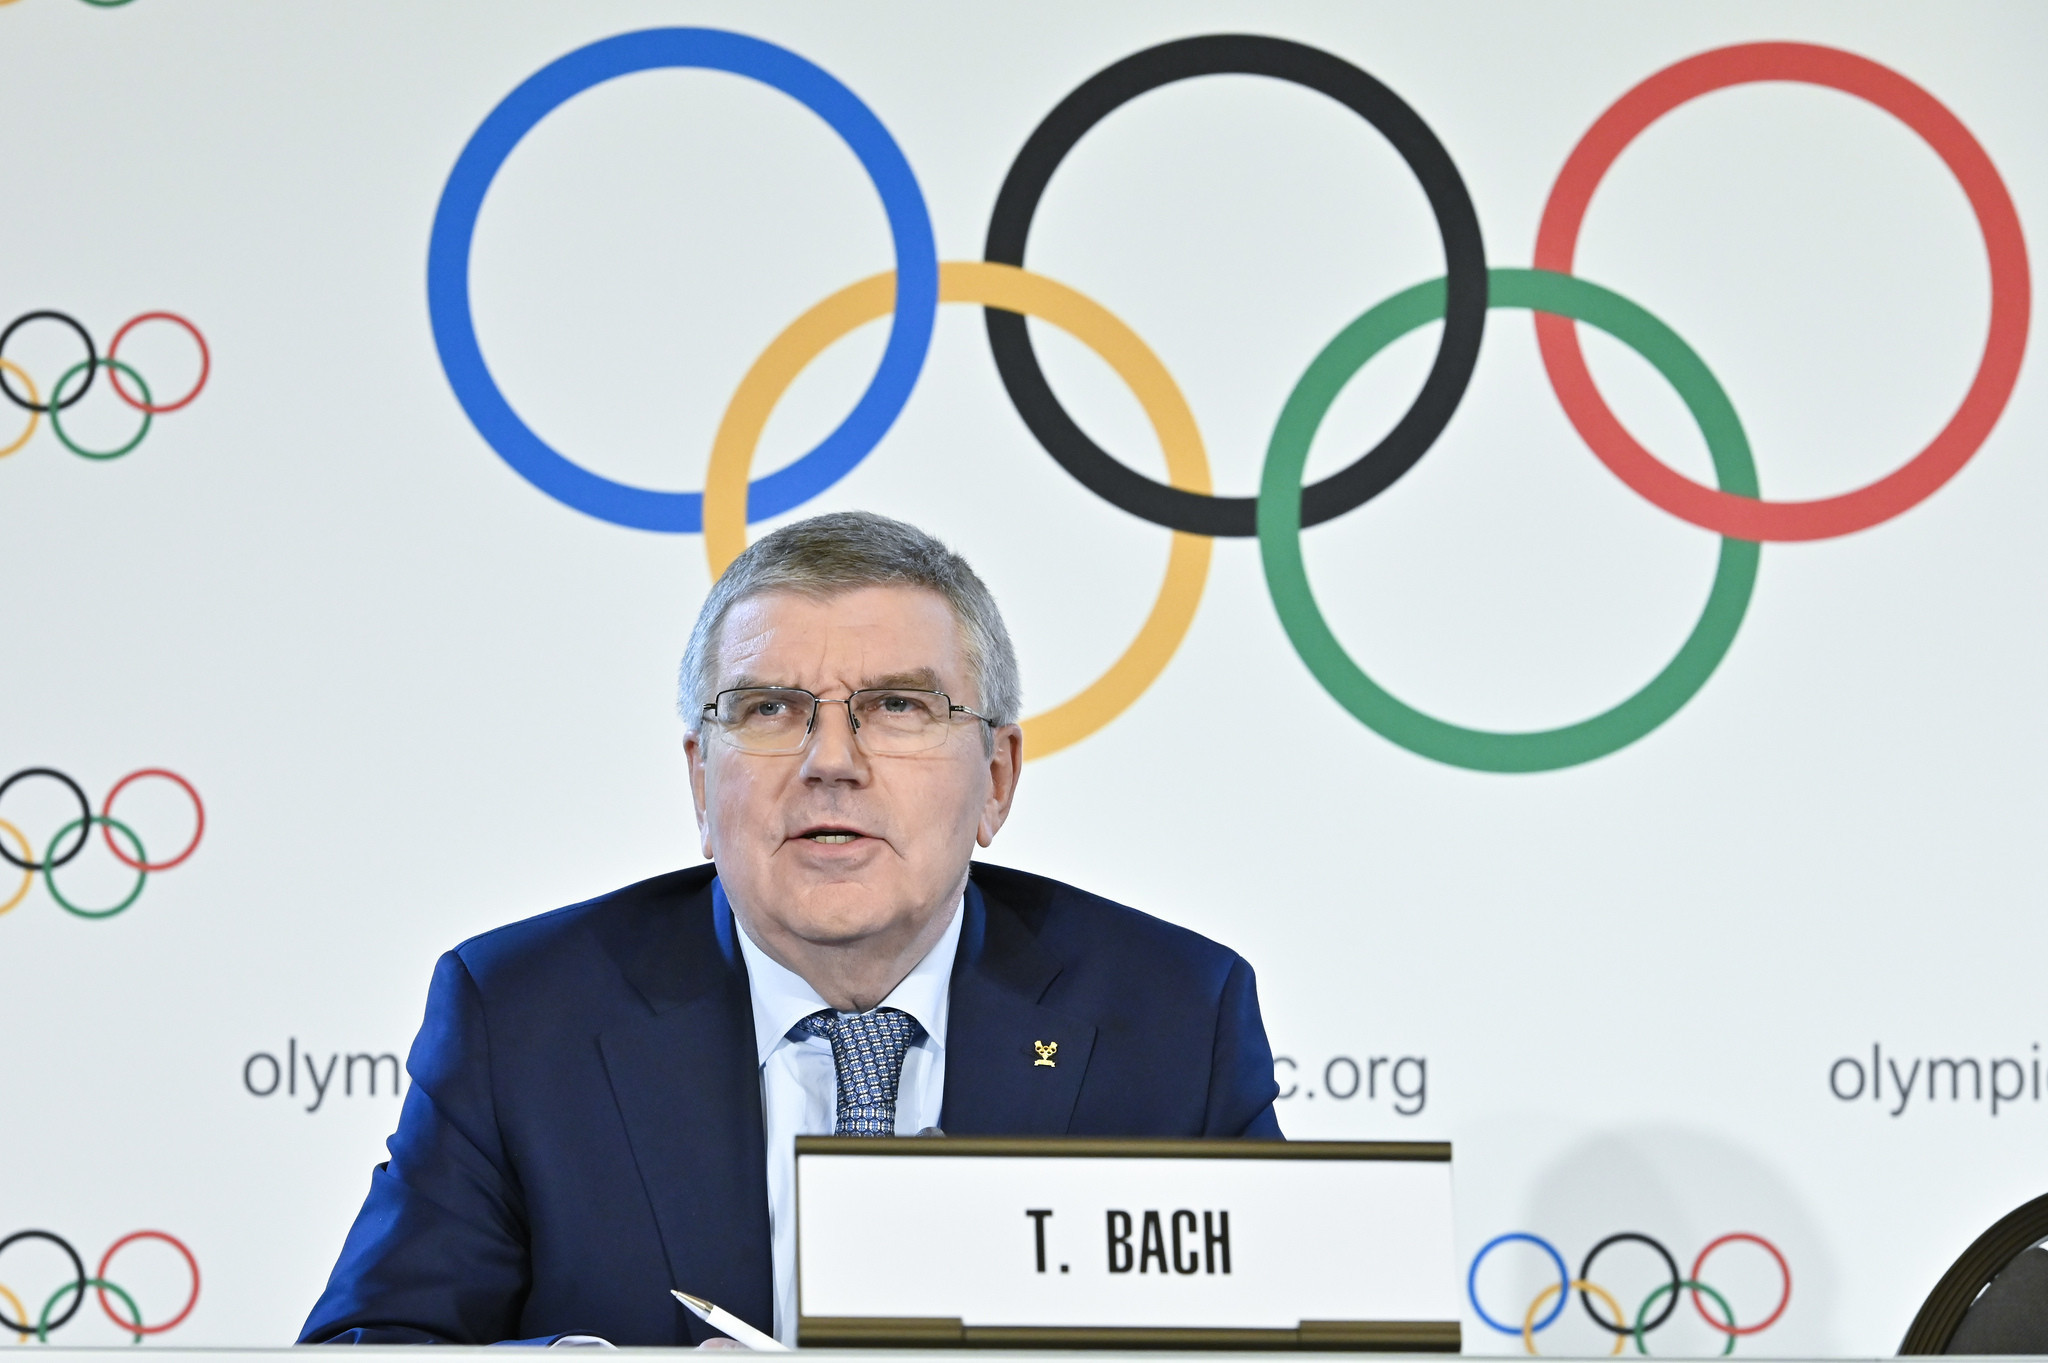 IOC President Thomas Bach insisted the organisation would not move towards a selection, rather than an election, process when deciding the host of the Olympic Games ©Getty Images